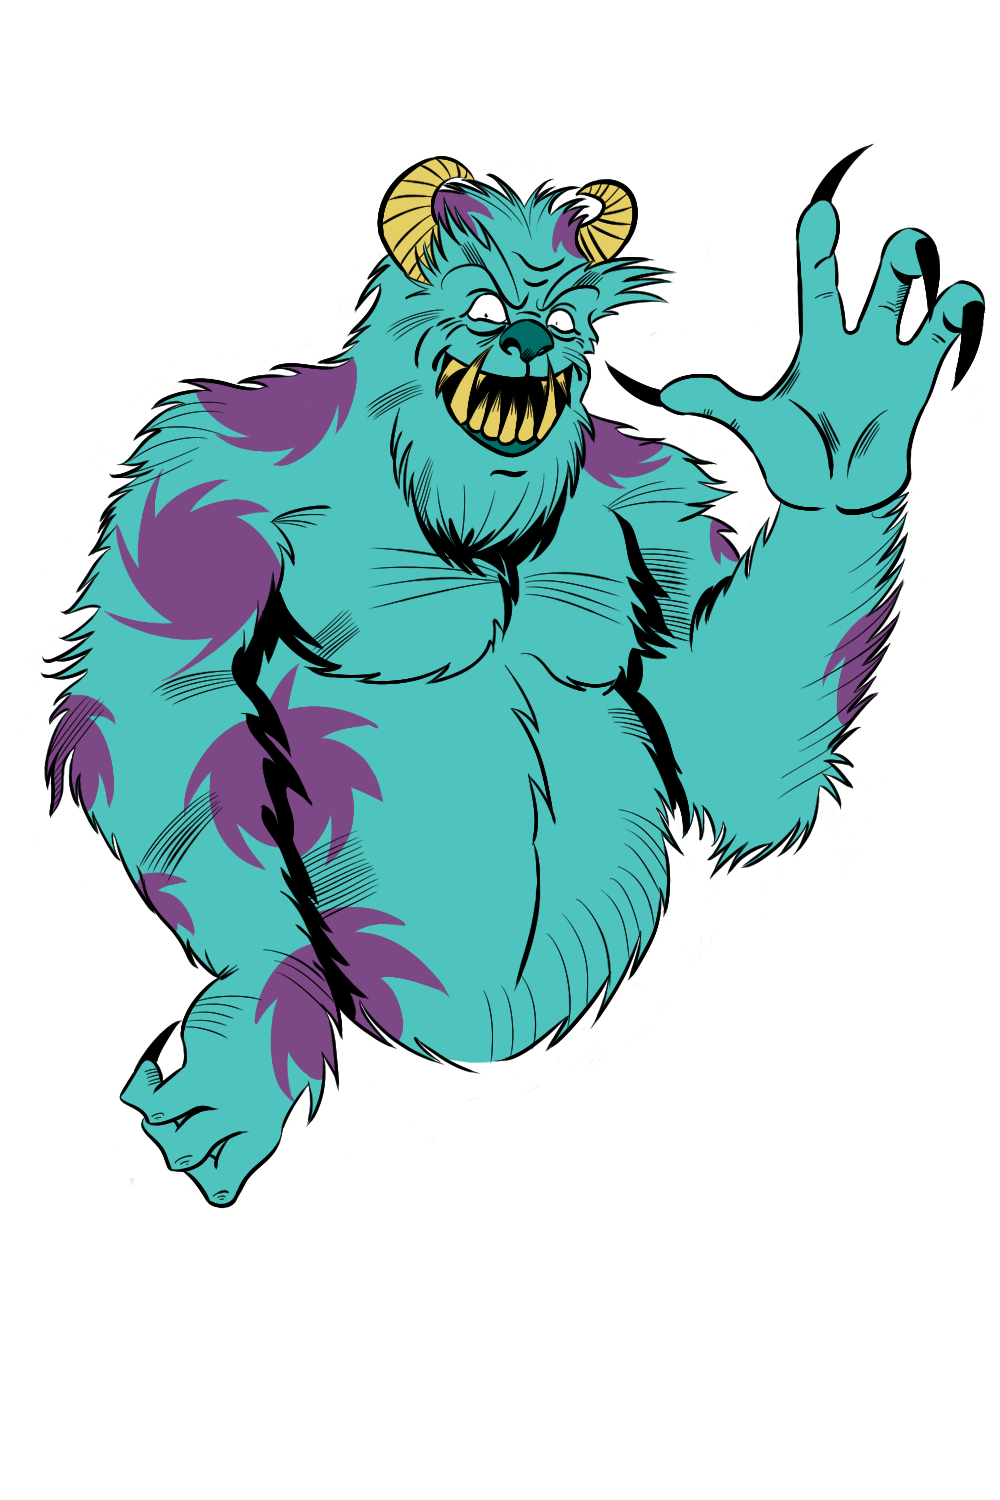 1000x1500 Monsters Inc Sully By Owenoak95